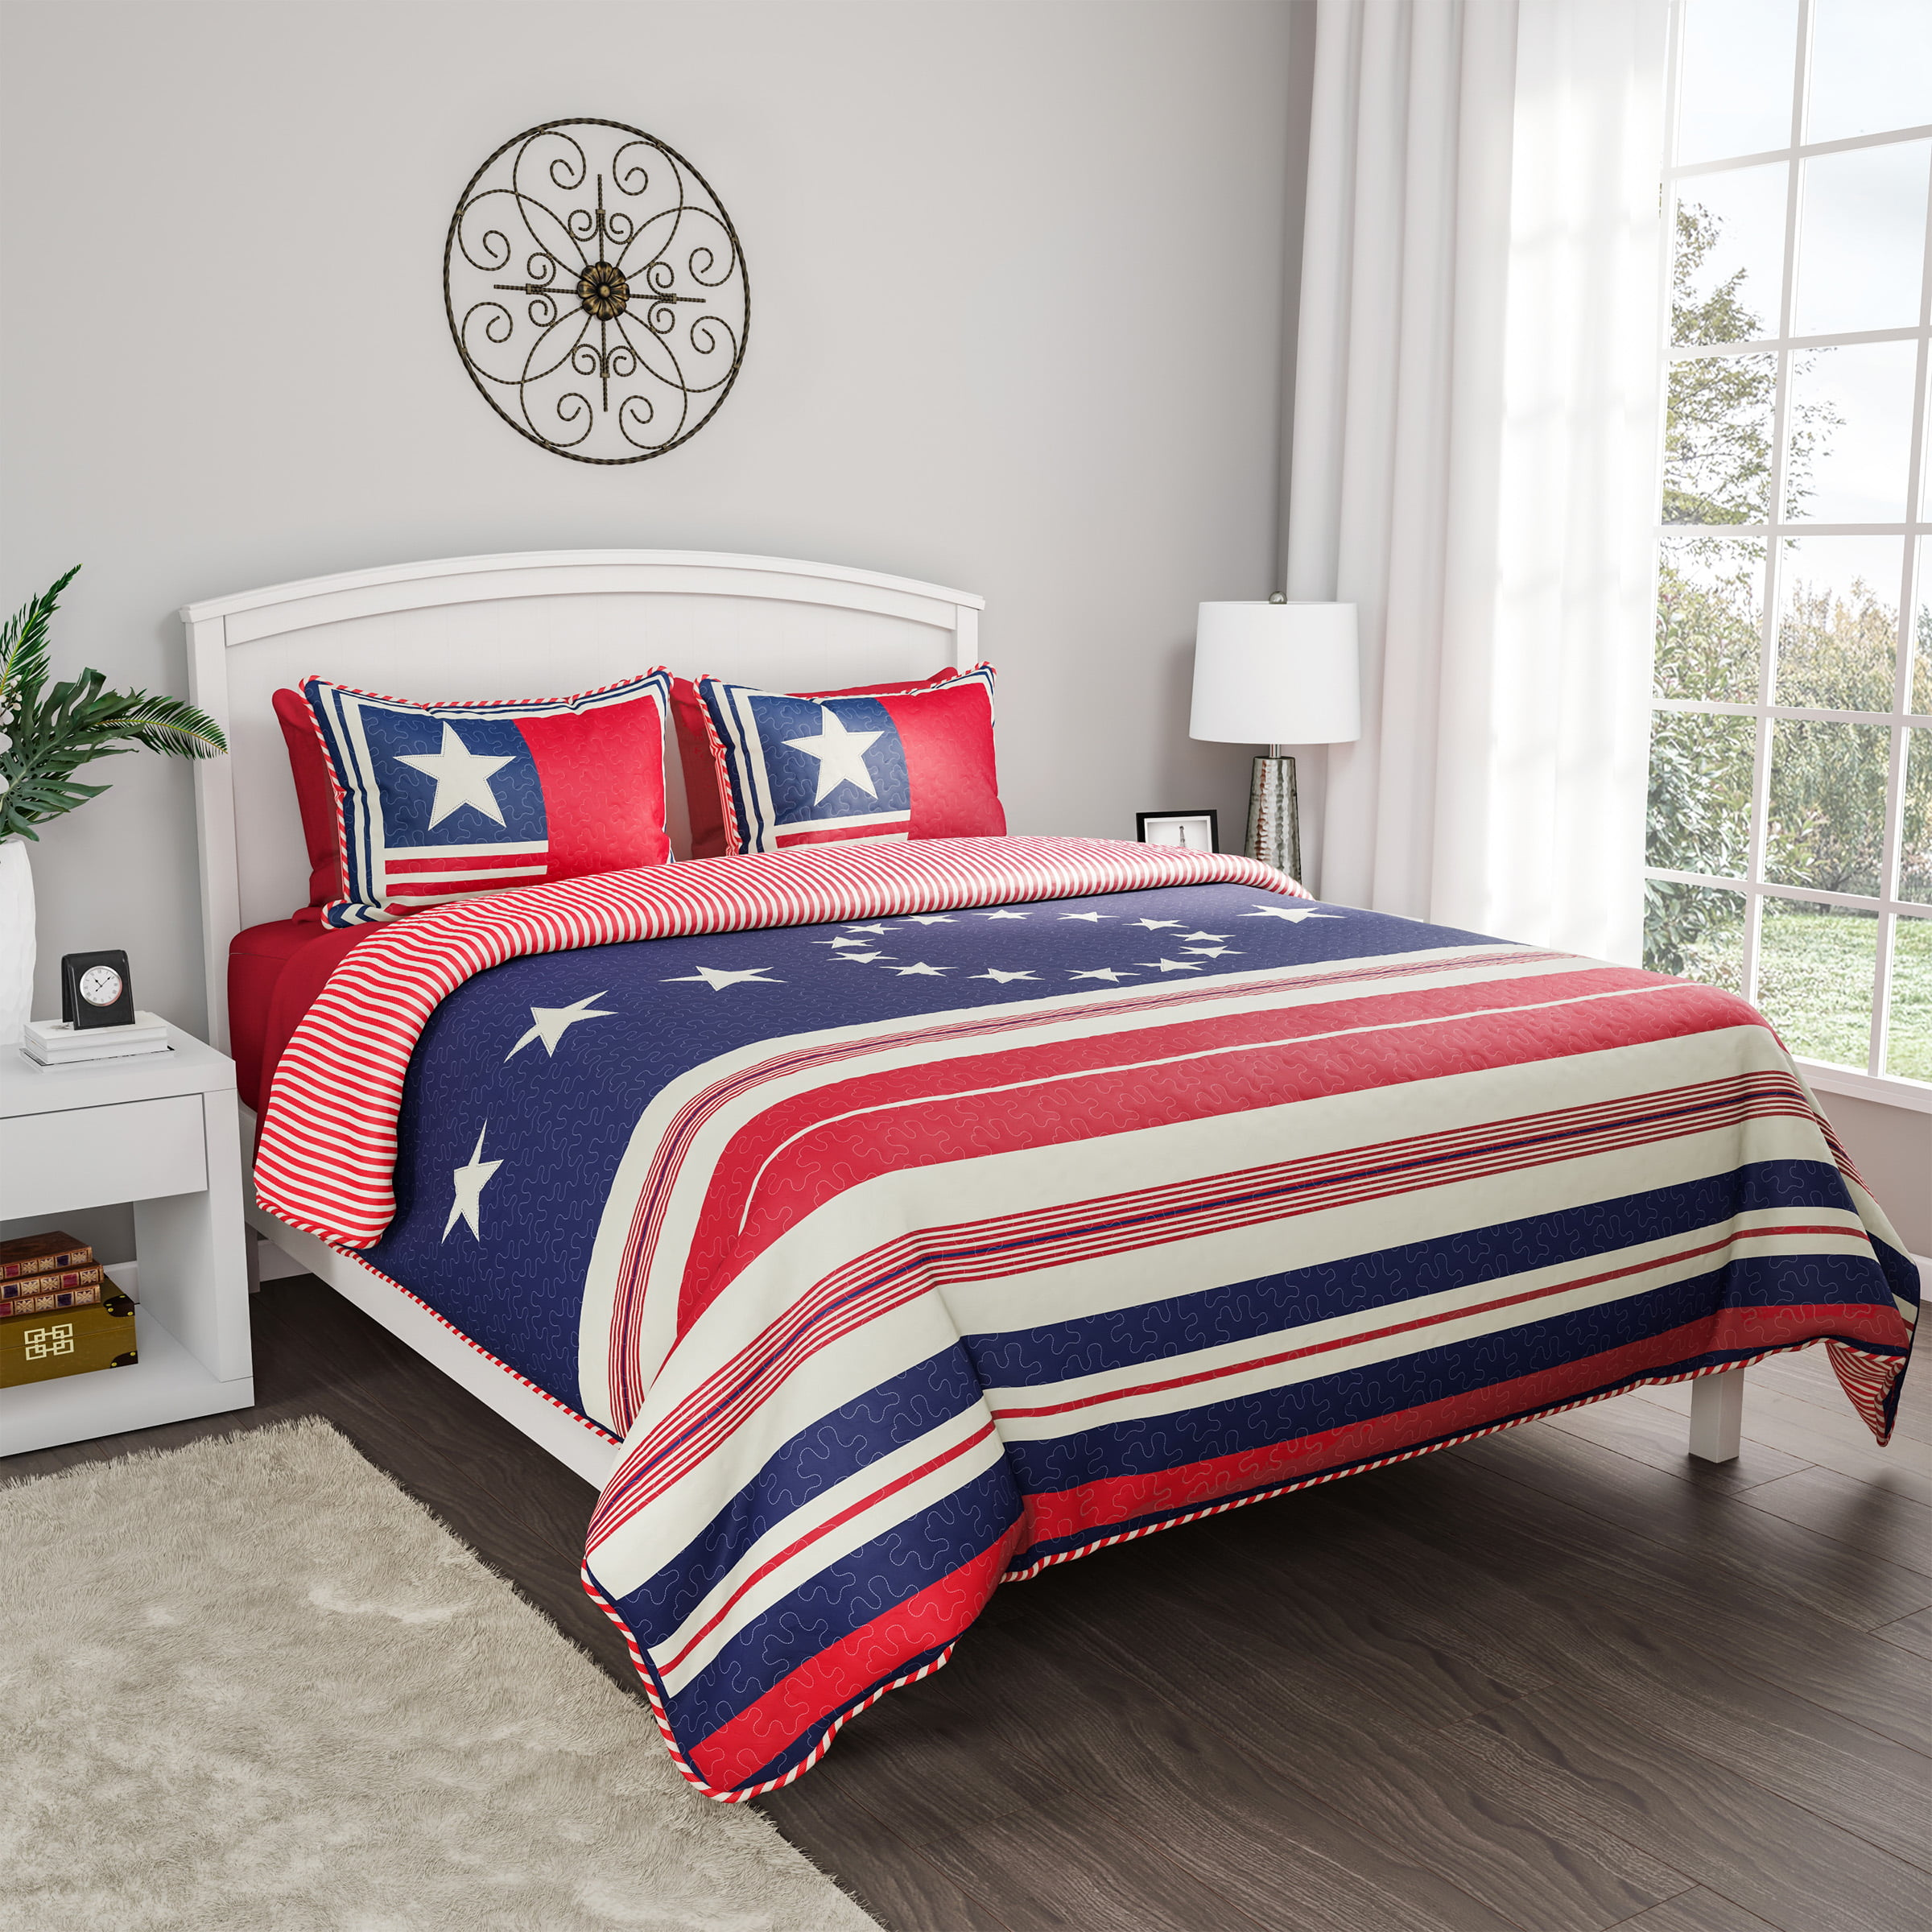 2pc Hypoallergenic Glory Bound Patriotic Americana Flag Print Quilt Bed Set by Somerset Home (TXL) by Trademark Global LLC